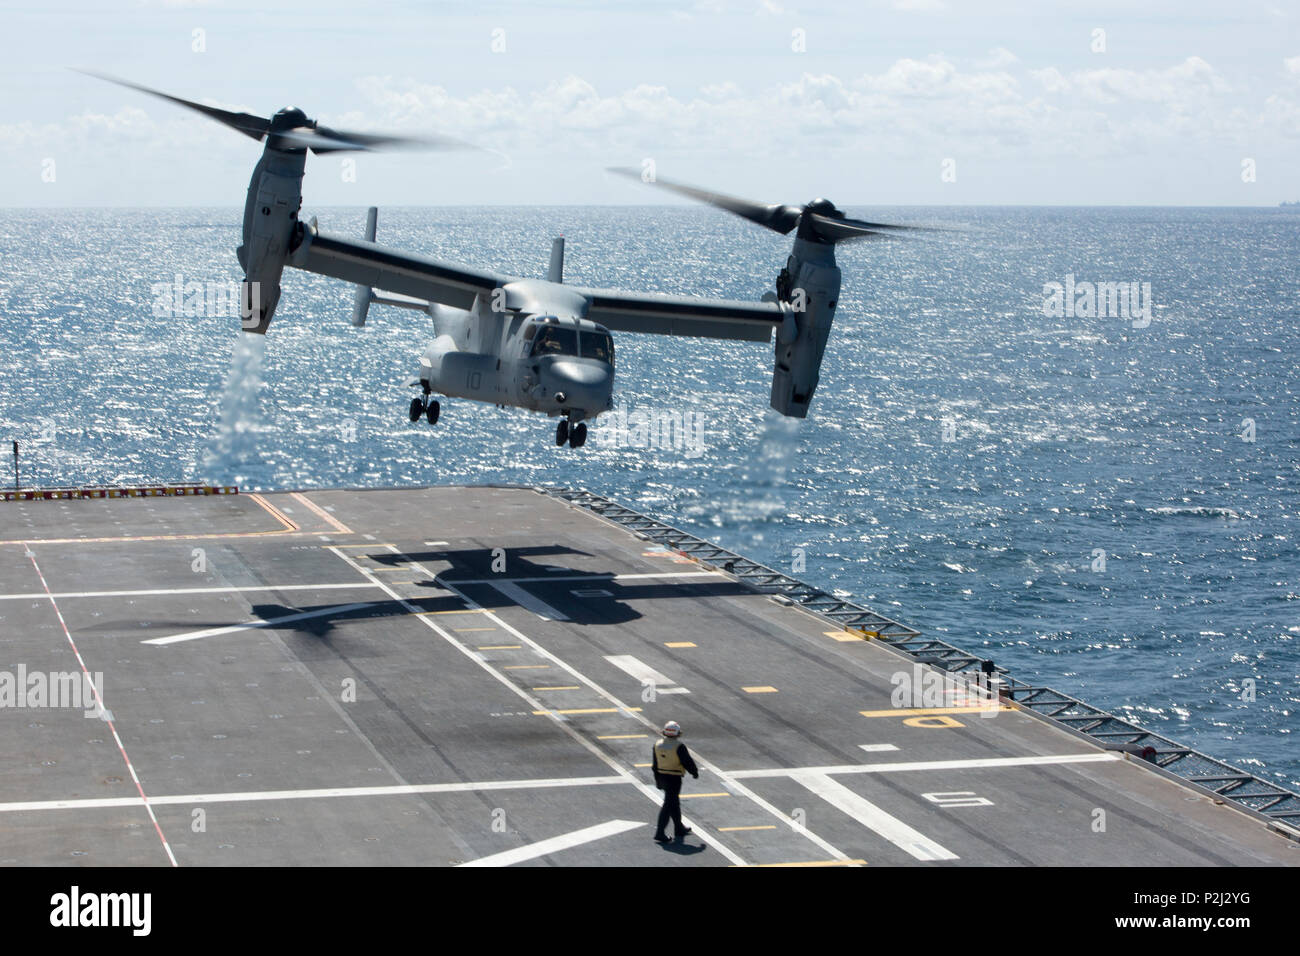 An MV-22B Osprey from Marine Medium Tiltrotor Squadron 266, Special Purpose Marine Air-Ground Task Force-Crisis Response-Africa, takes off from aboard the Spanish amphibious assault ship Juan Carlos I in the Gulf of Cadiz, Spain, Sept. 14, 2016. The Spanish Navy hosted flight deck landing qualifications for SPMAGTF-CR-AF Marines to demonstrate interoperability between the U.S. and Spain. (U.S. Marine Corps photo by Staff Sgt. Tia Nagle) Stock Photo